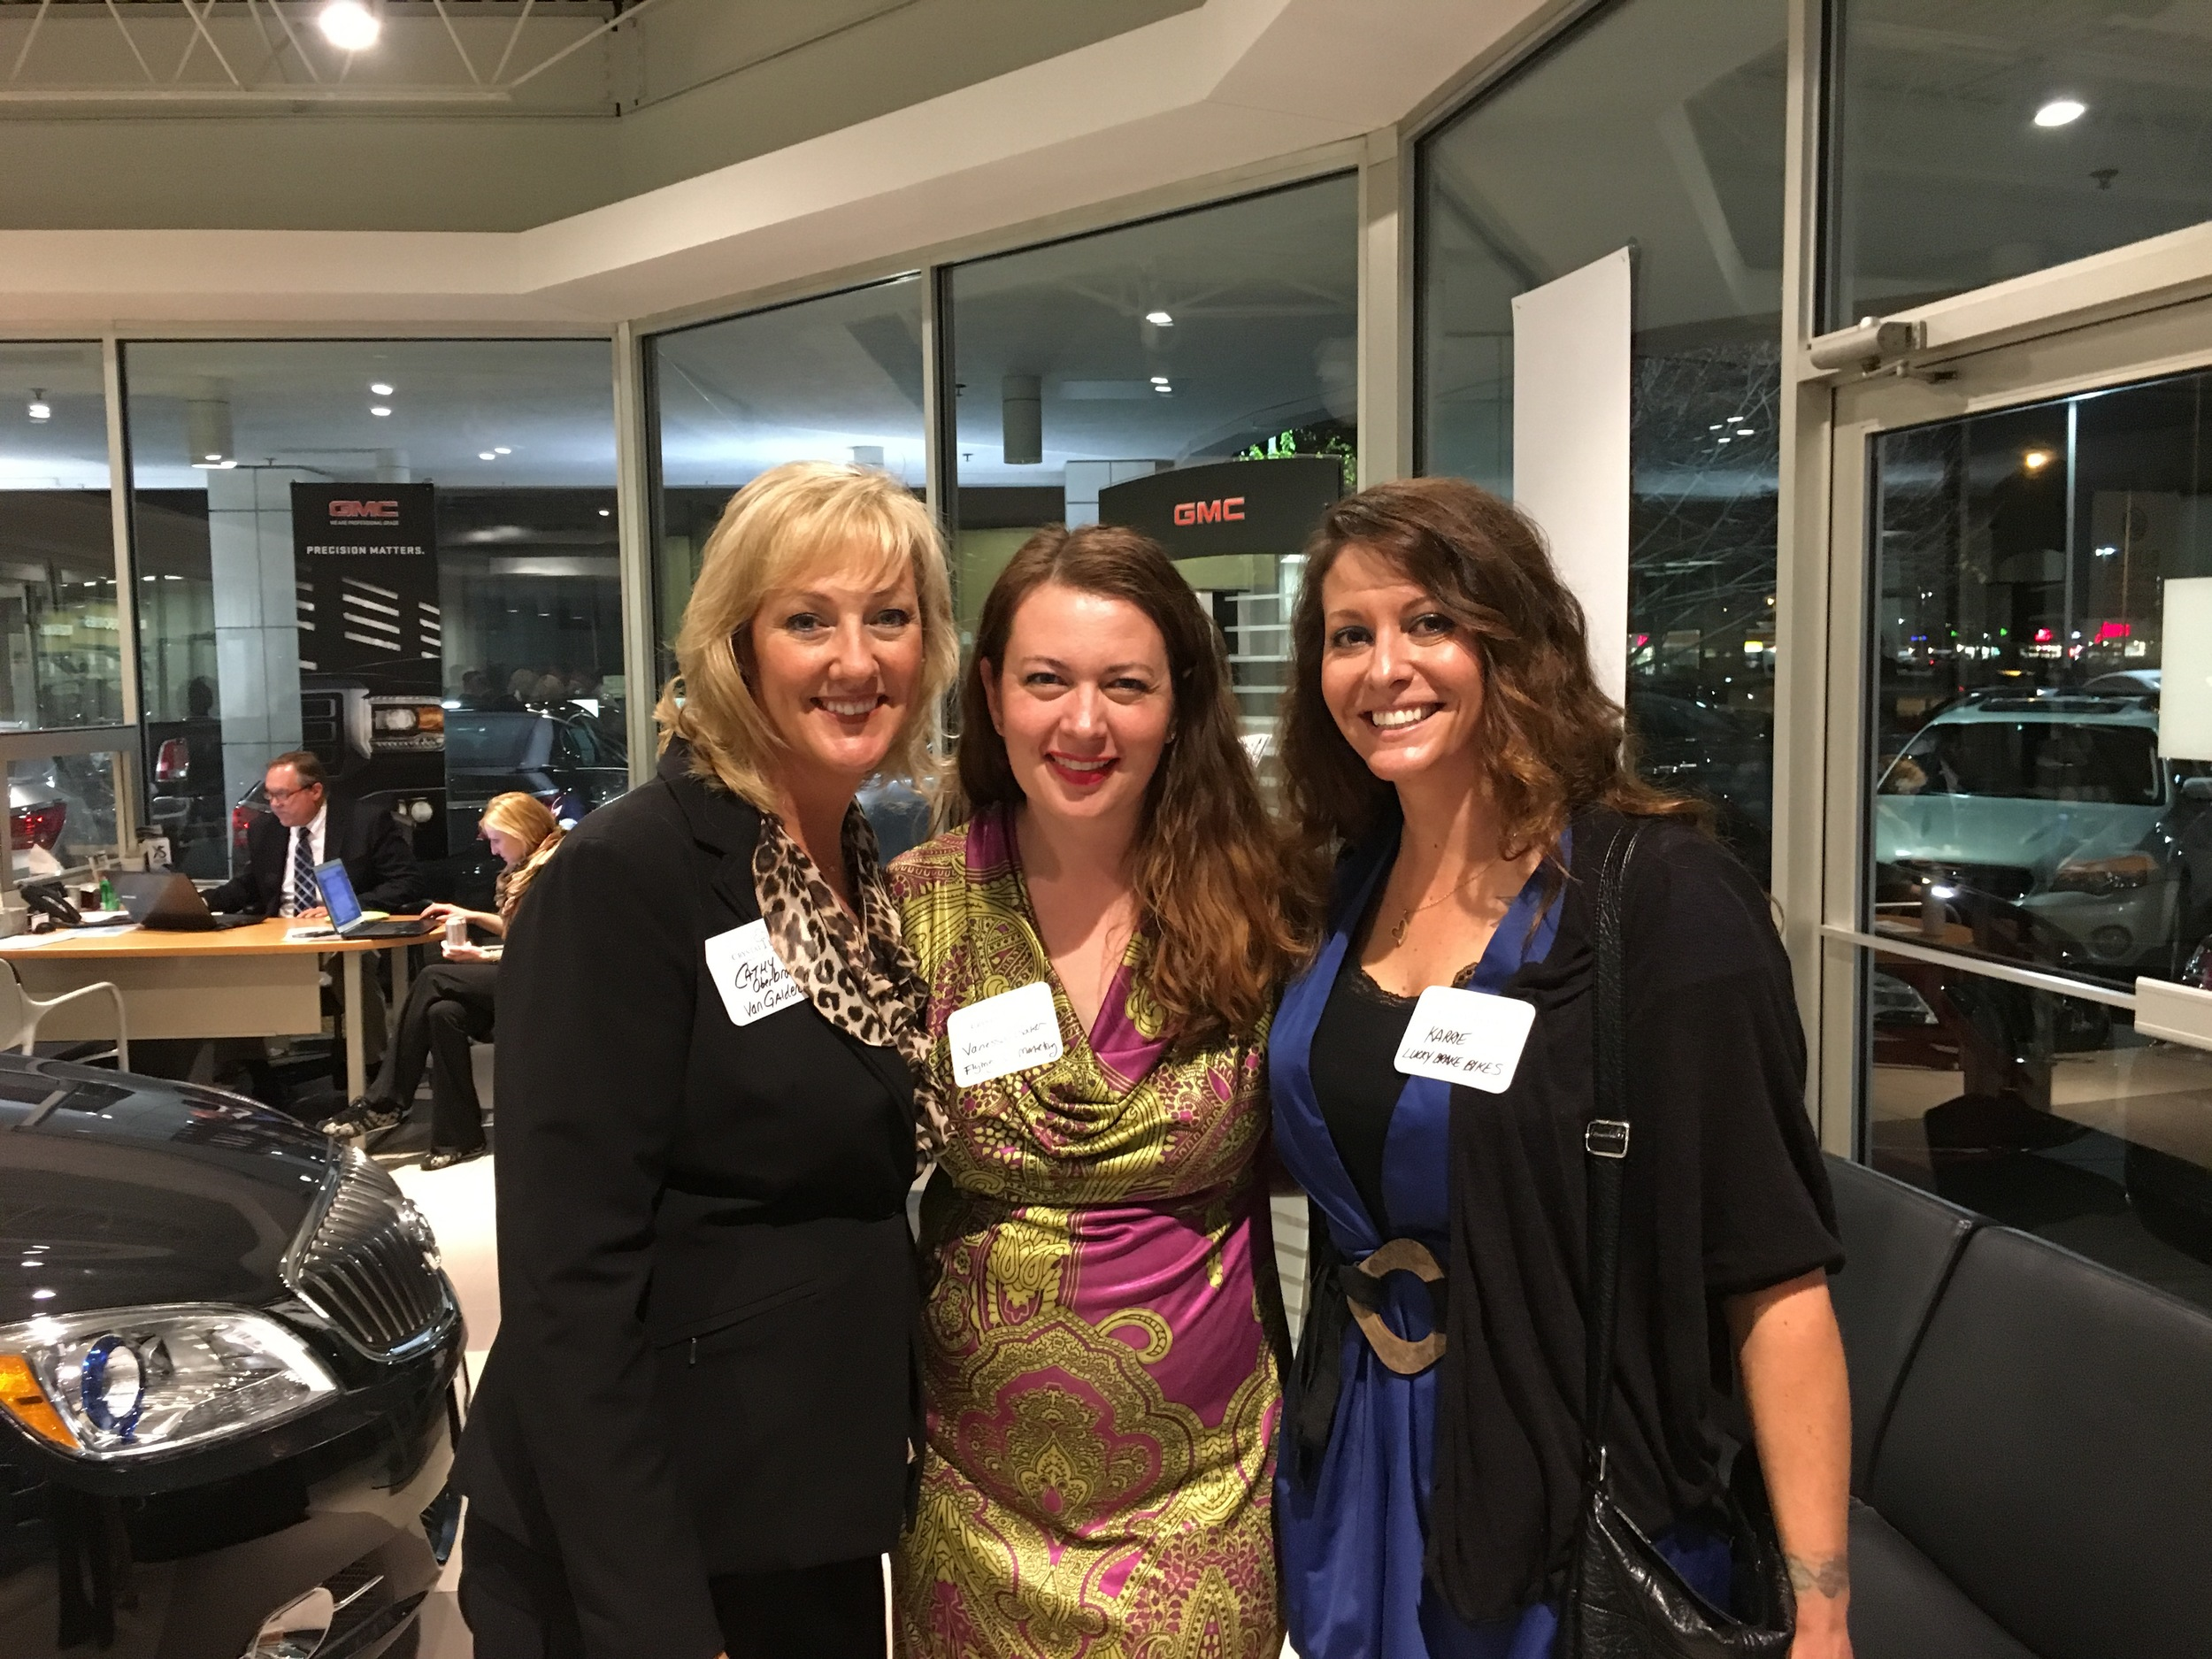 Cathy Oberbroeckling, Vanessa Baker and Karrie Ozyuk